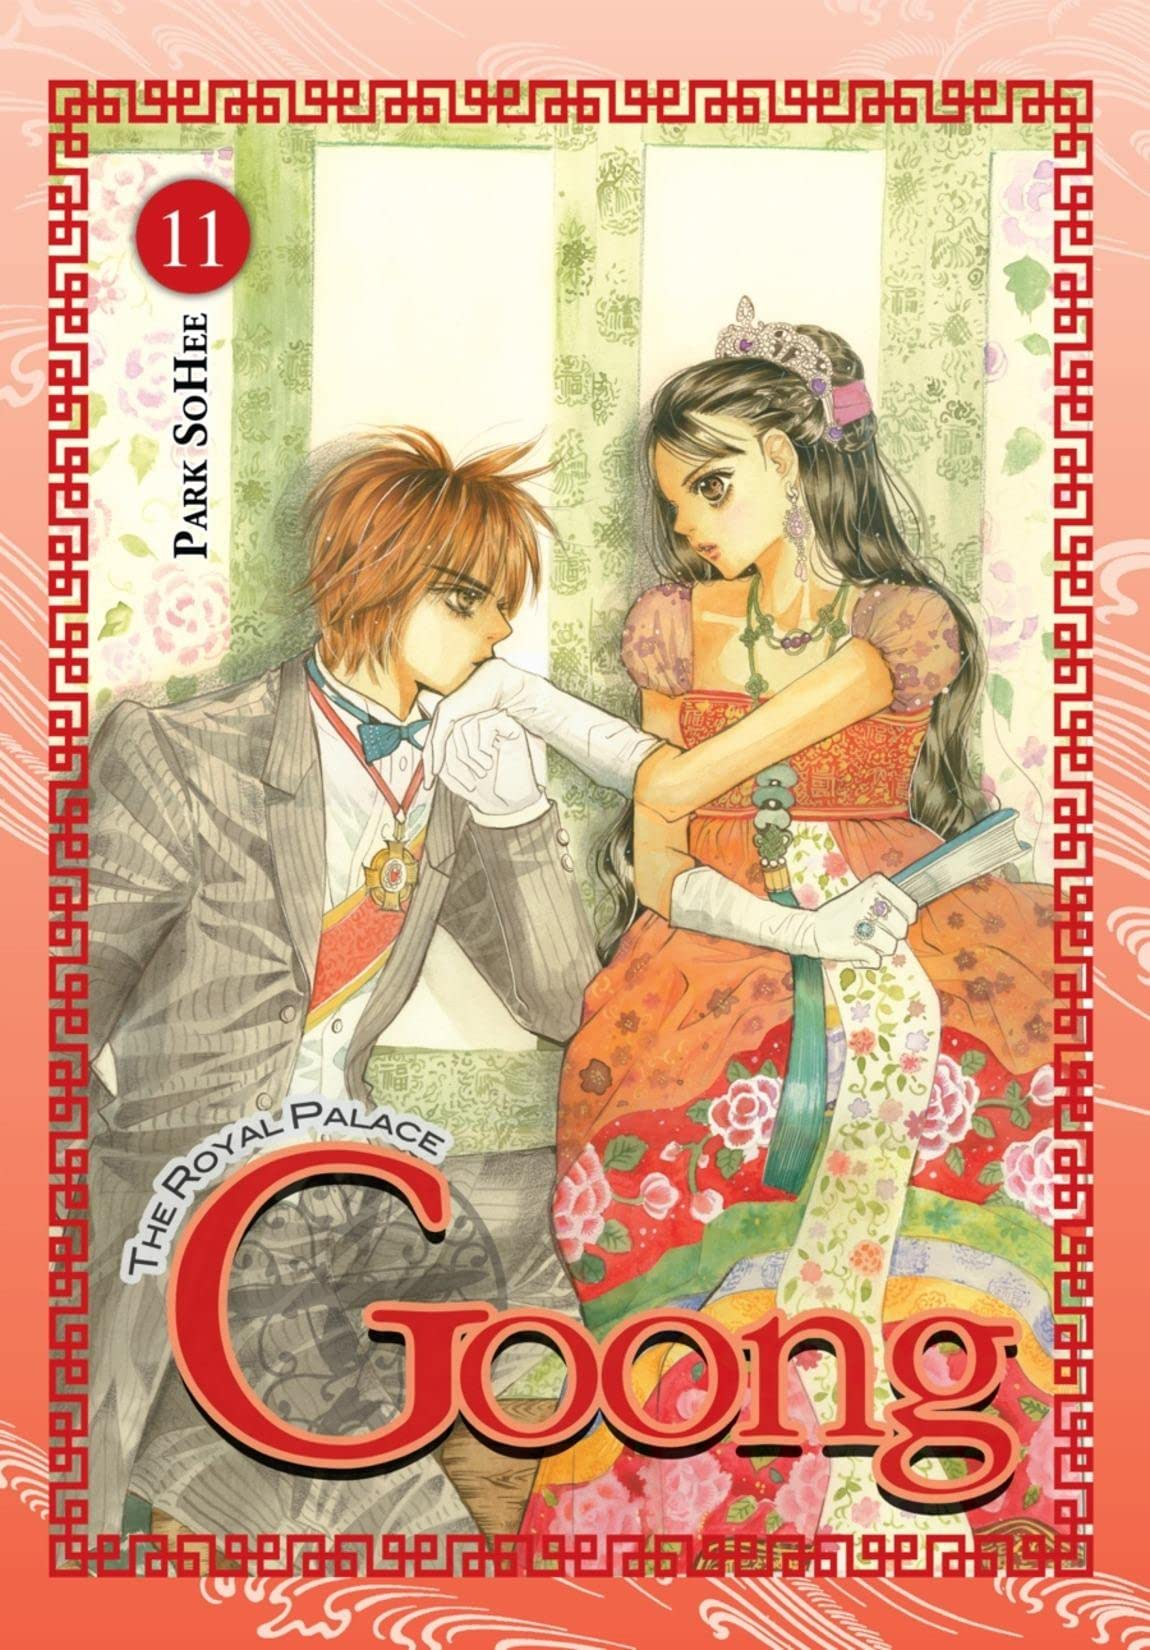 Goong Vol. 11: The Royal Palace